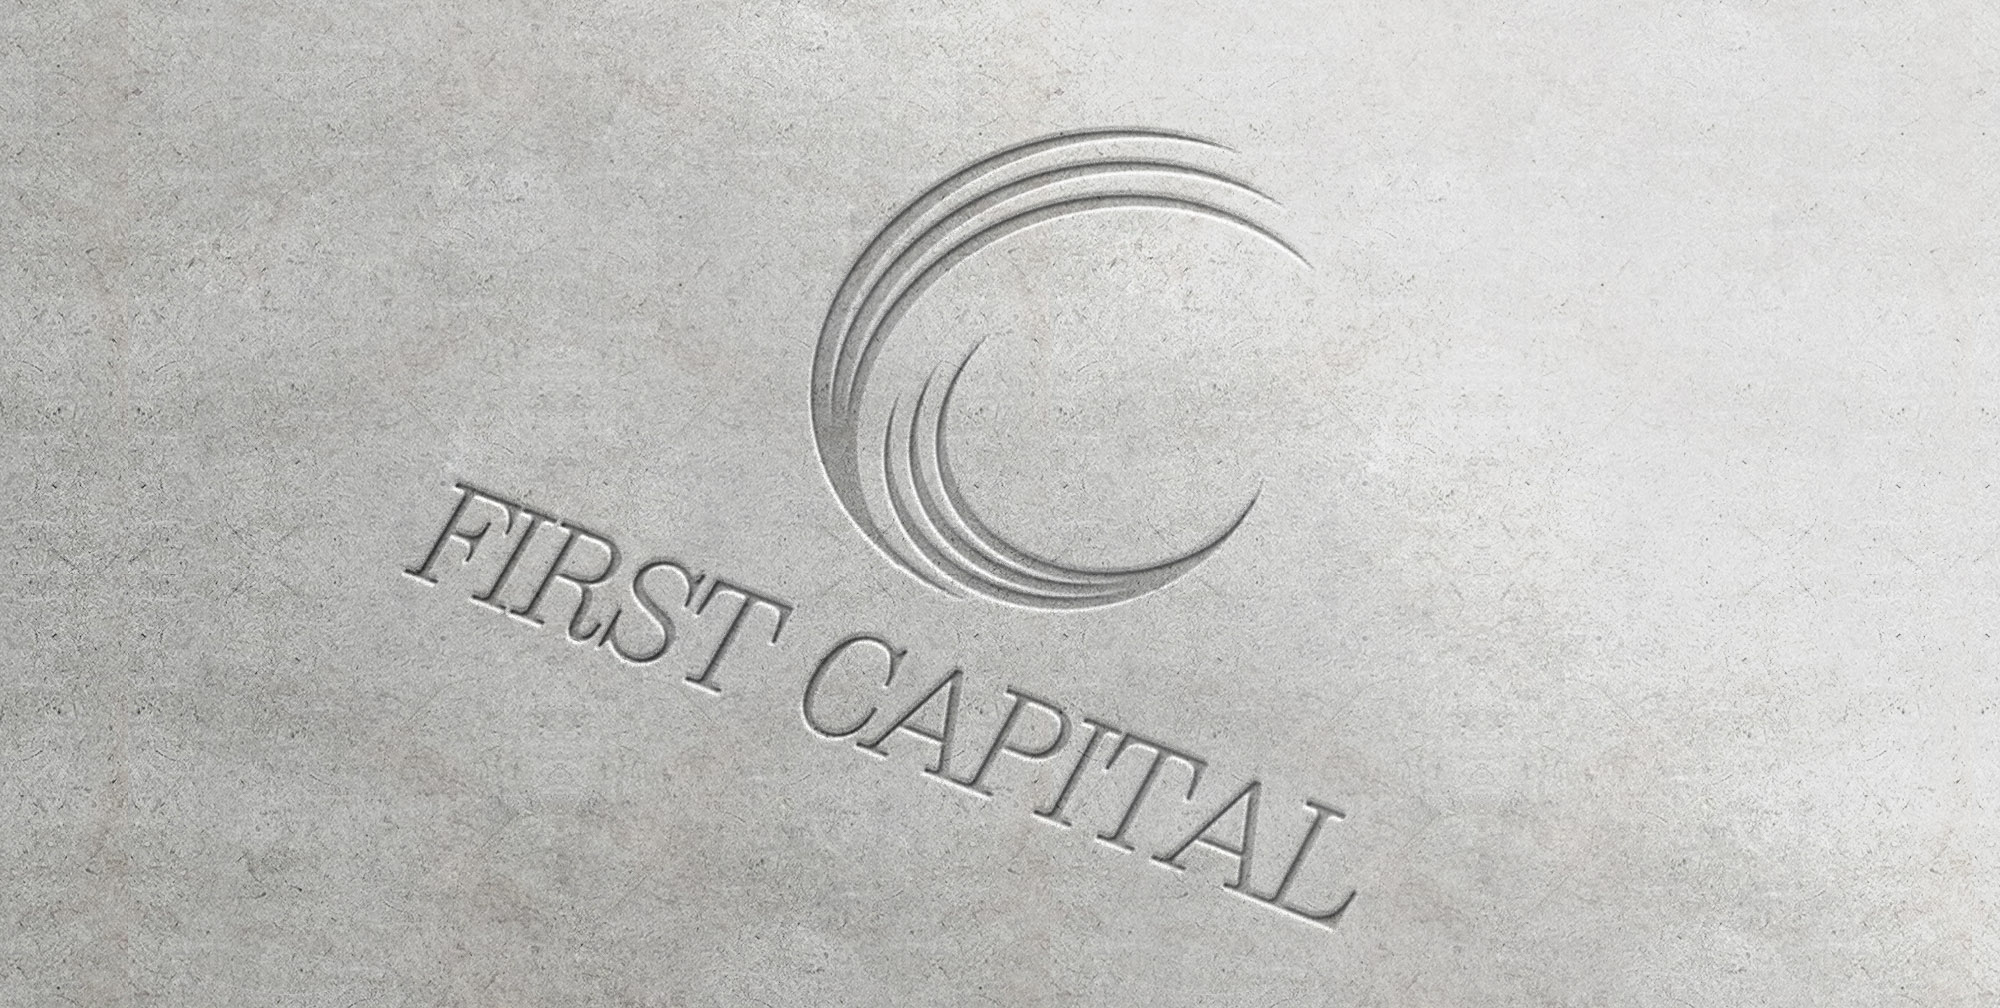 History of First Capital